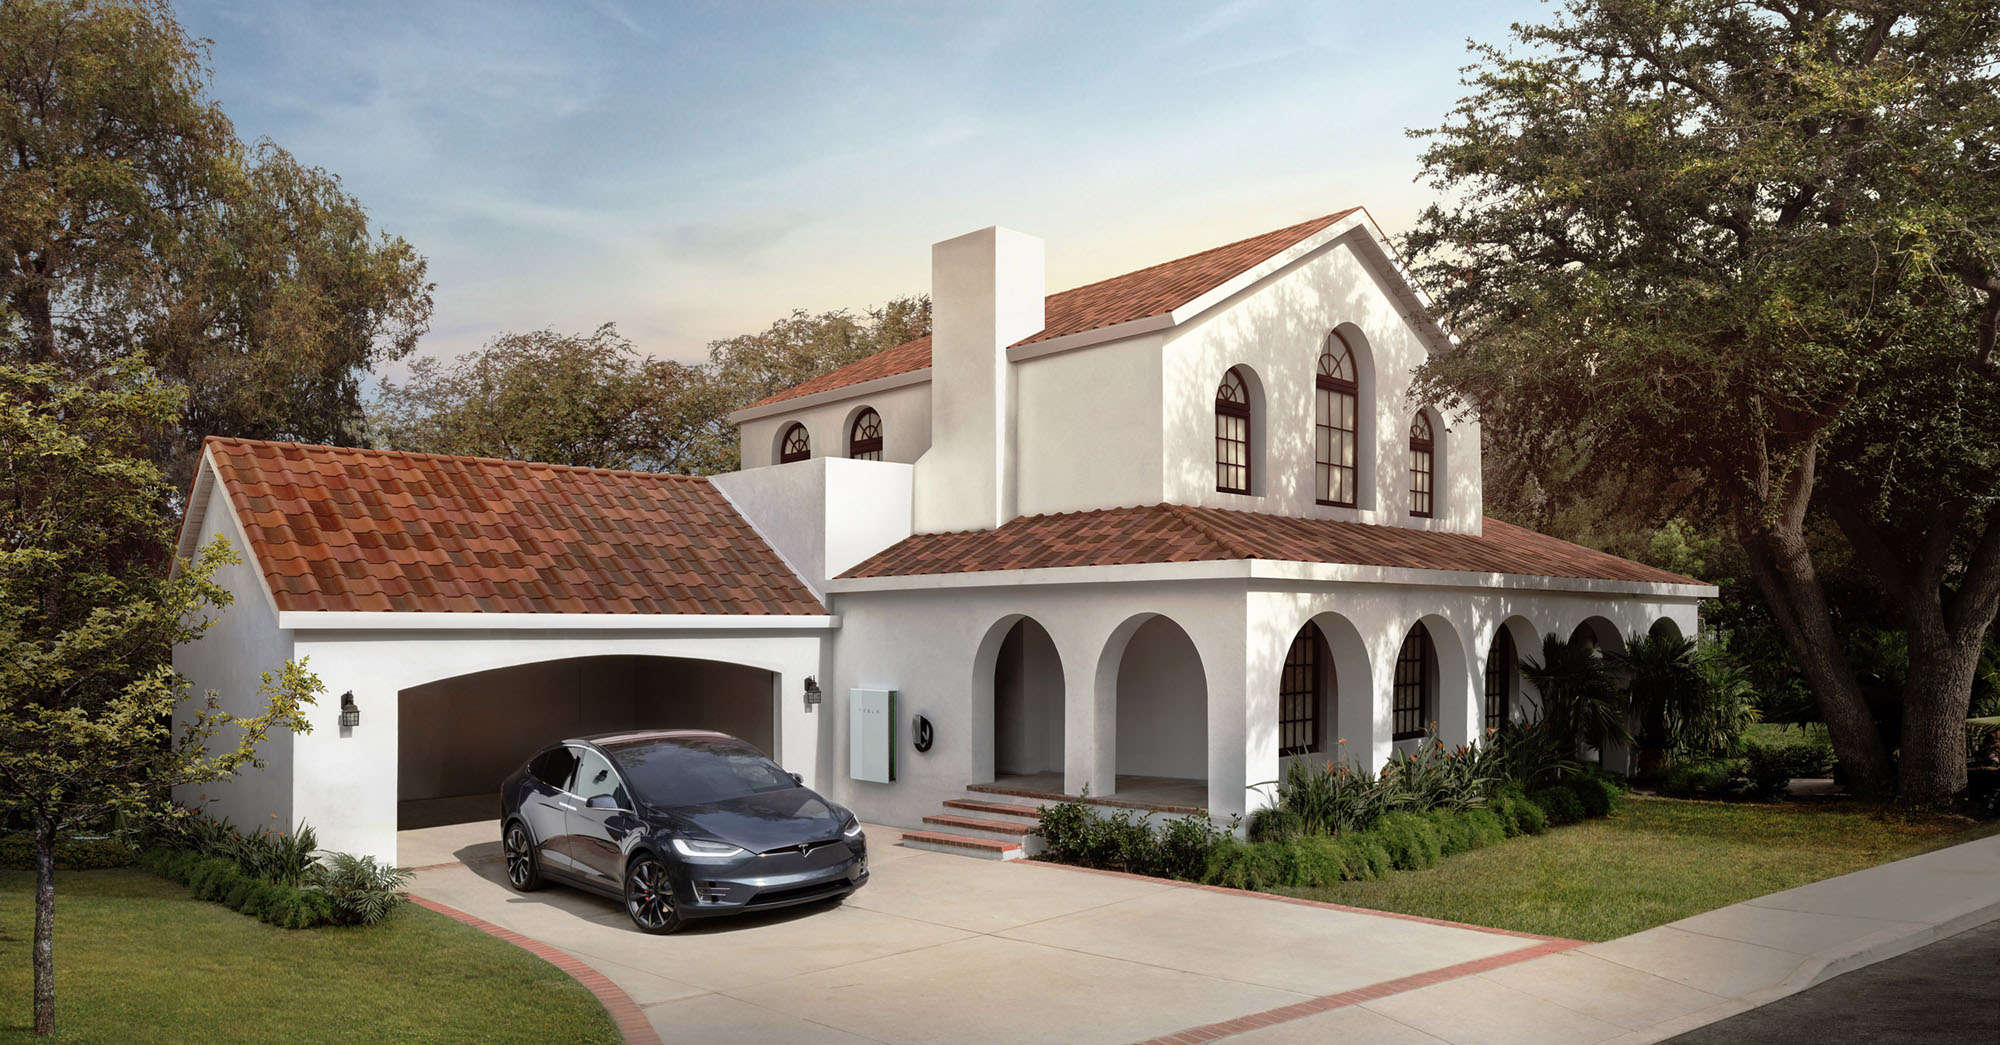 tesla solar roof tile installations could come soon for california. Black Bedroom Furniture Sets. Home Design Ideas